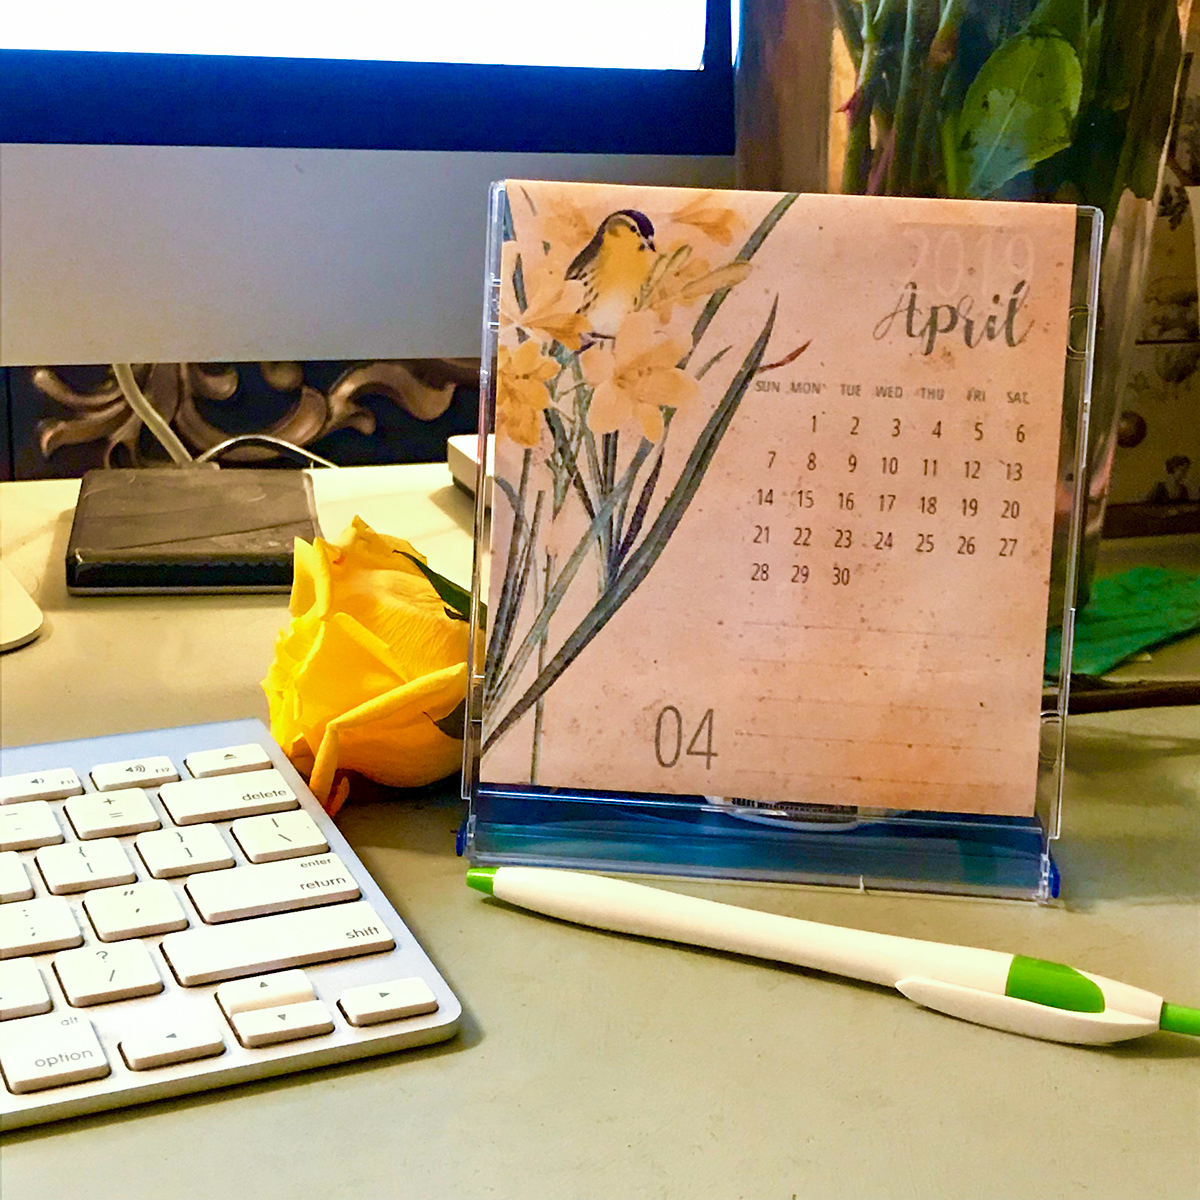 FREE Printable Calendar 2019 on Desk with Keyboard